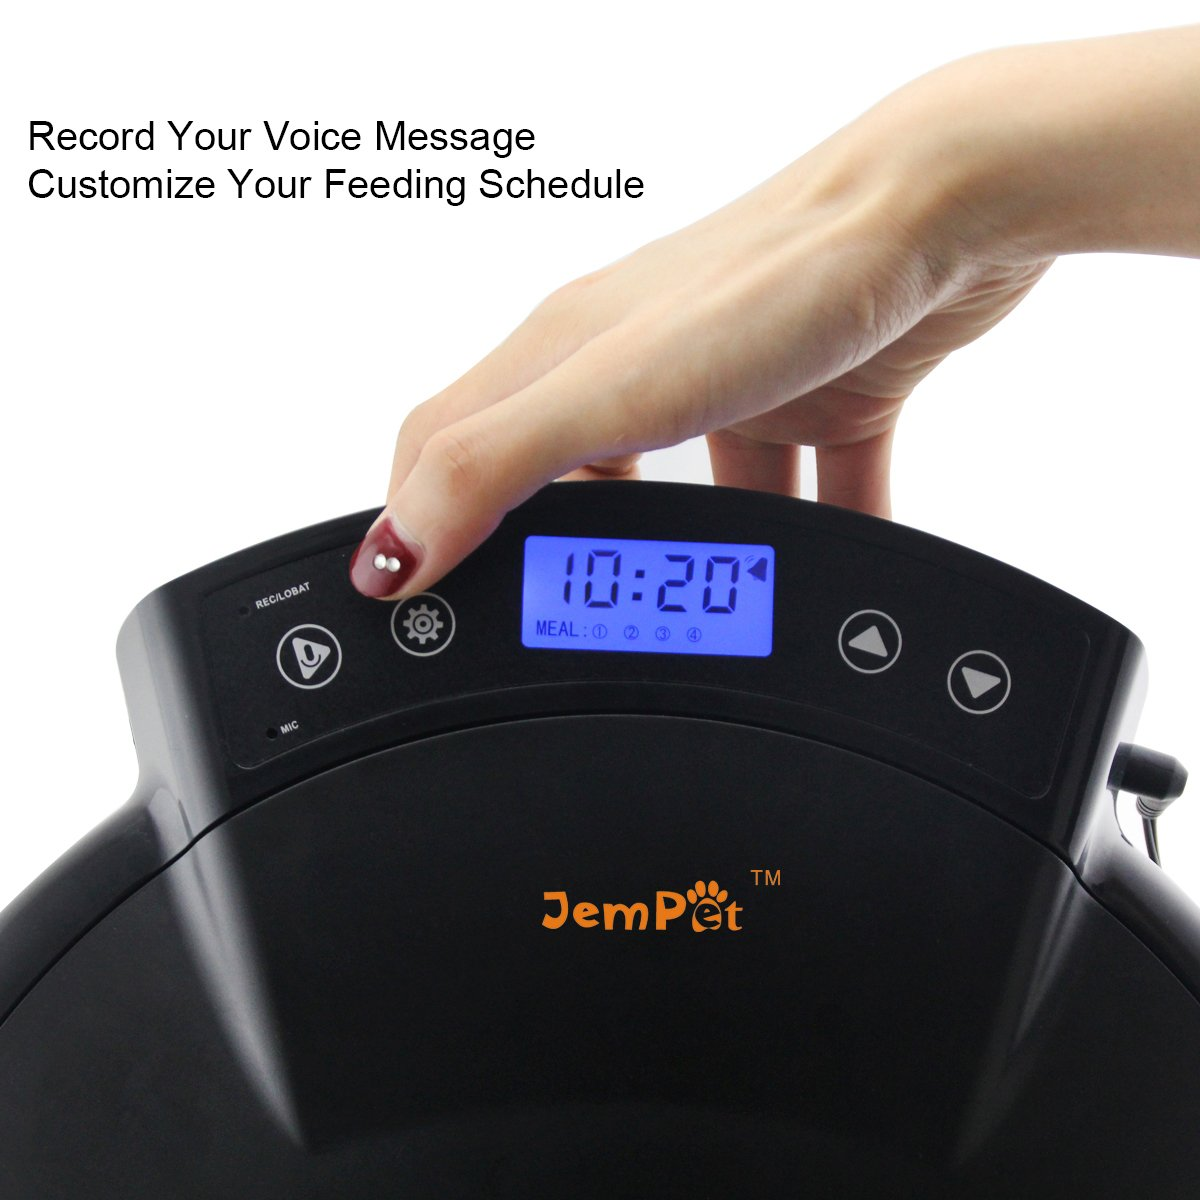 JEMPET Automatic Pet Feeder Cats Dogs, 5 Meal Trays Dry Wet Food, Auto Pet Food Dispenser Programmed Timer Voice Recording Function, 5 x 240ml by JEMPET (Image #2)